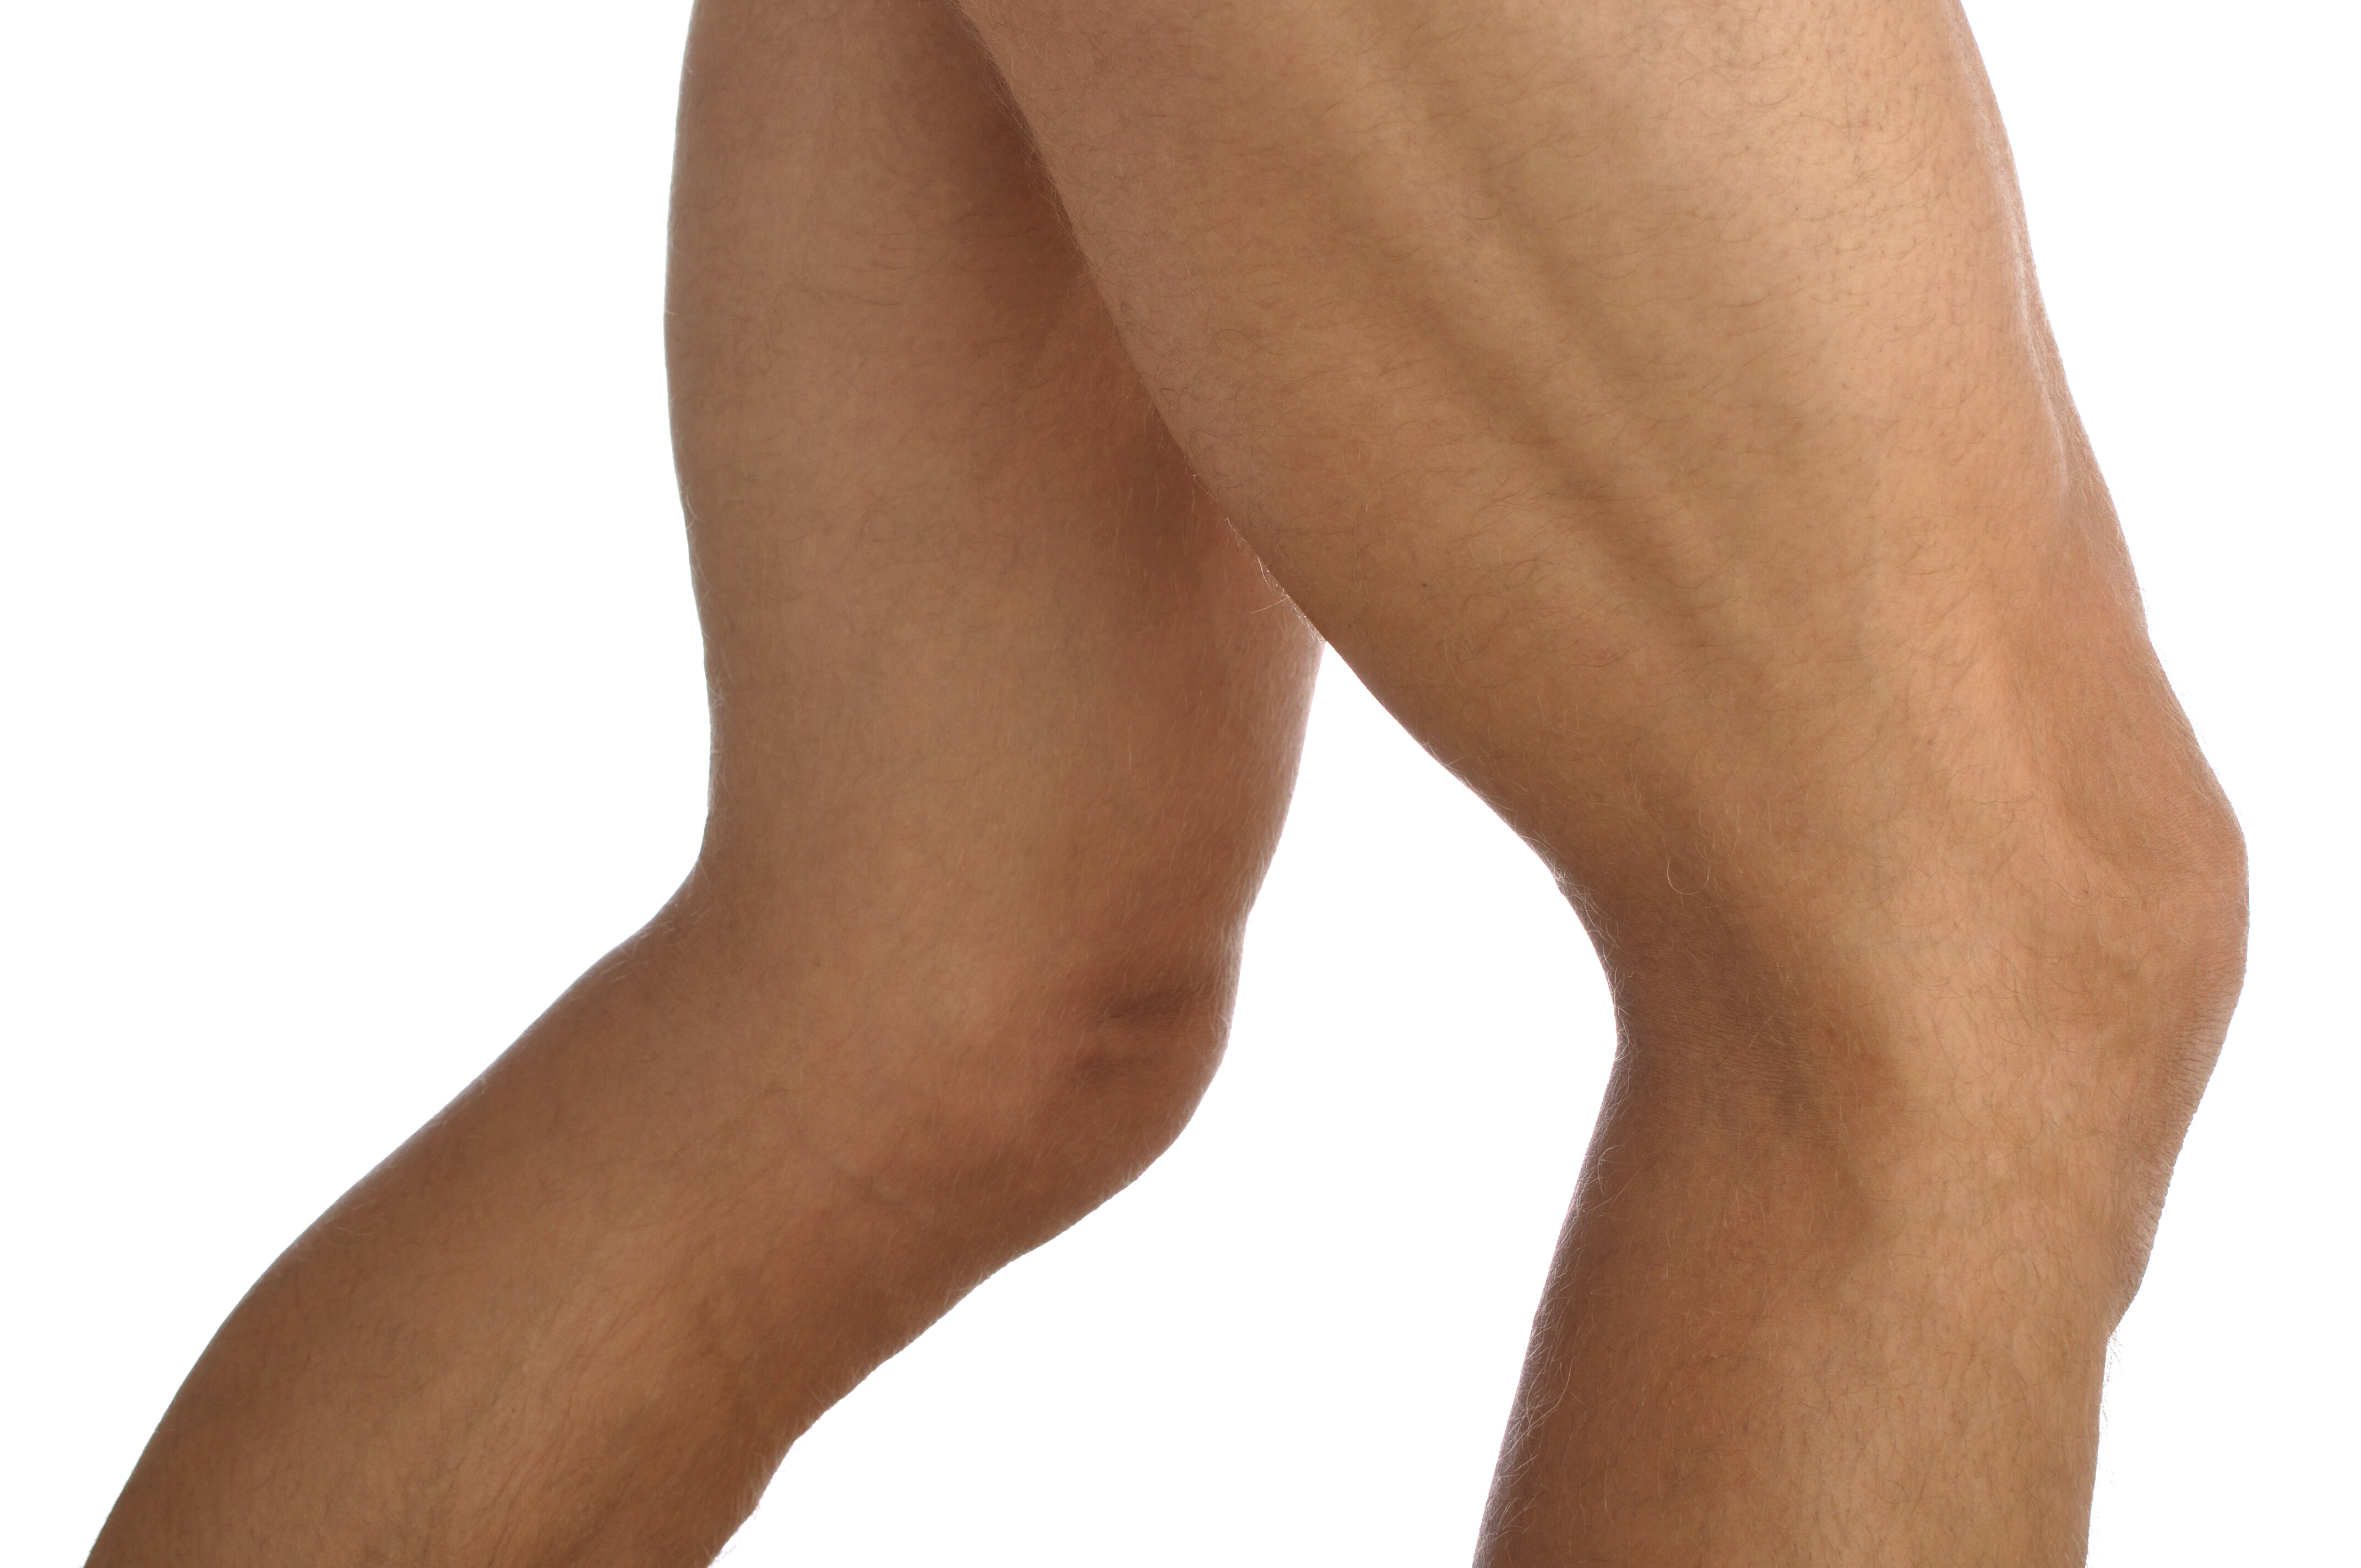 Dent in Thigh: One of the Most Feared Symptoms